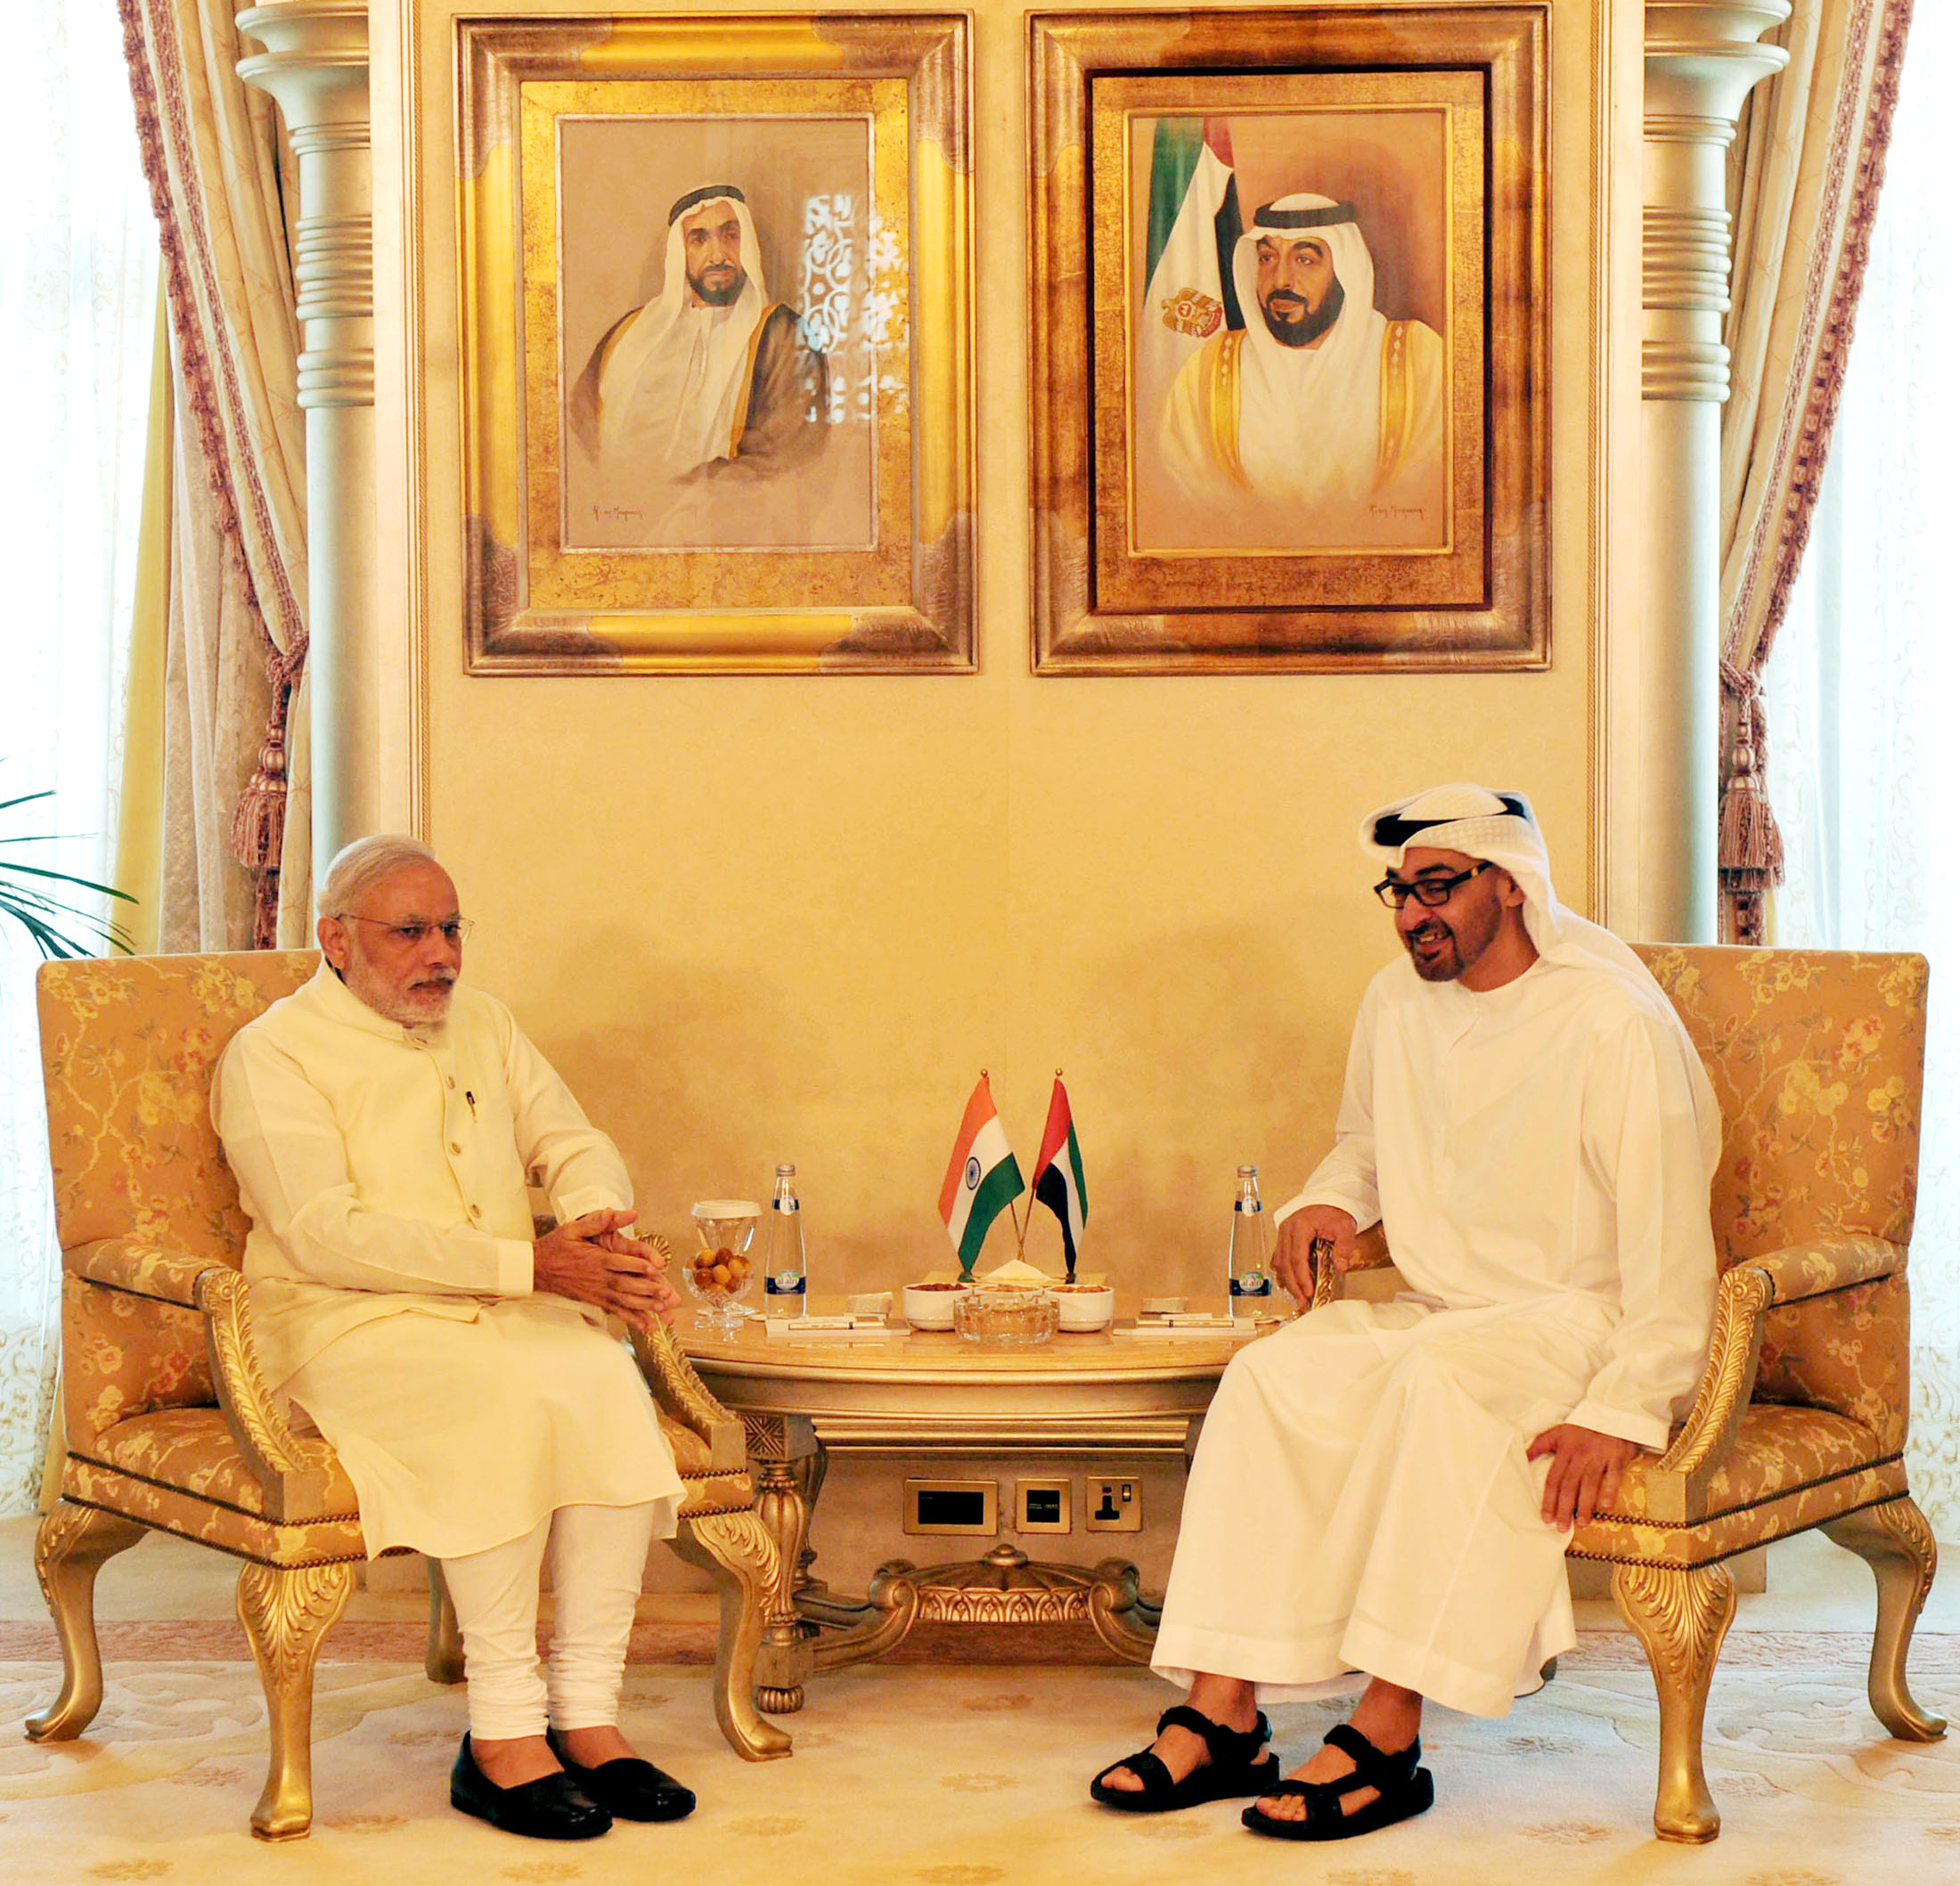 Prime Minister Narendra Modi with the Crown Prince of Abu Dhabi Sheikh Mohammed bin Zayed Al Nahyan in Abu Dhabi. Pic: OST